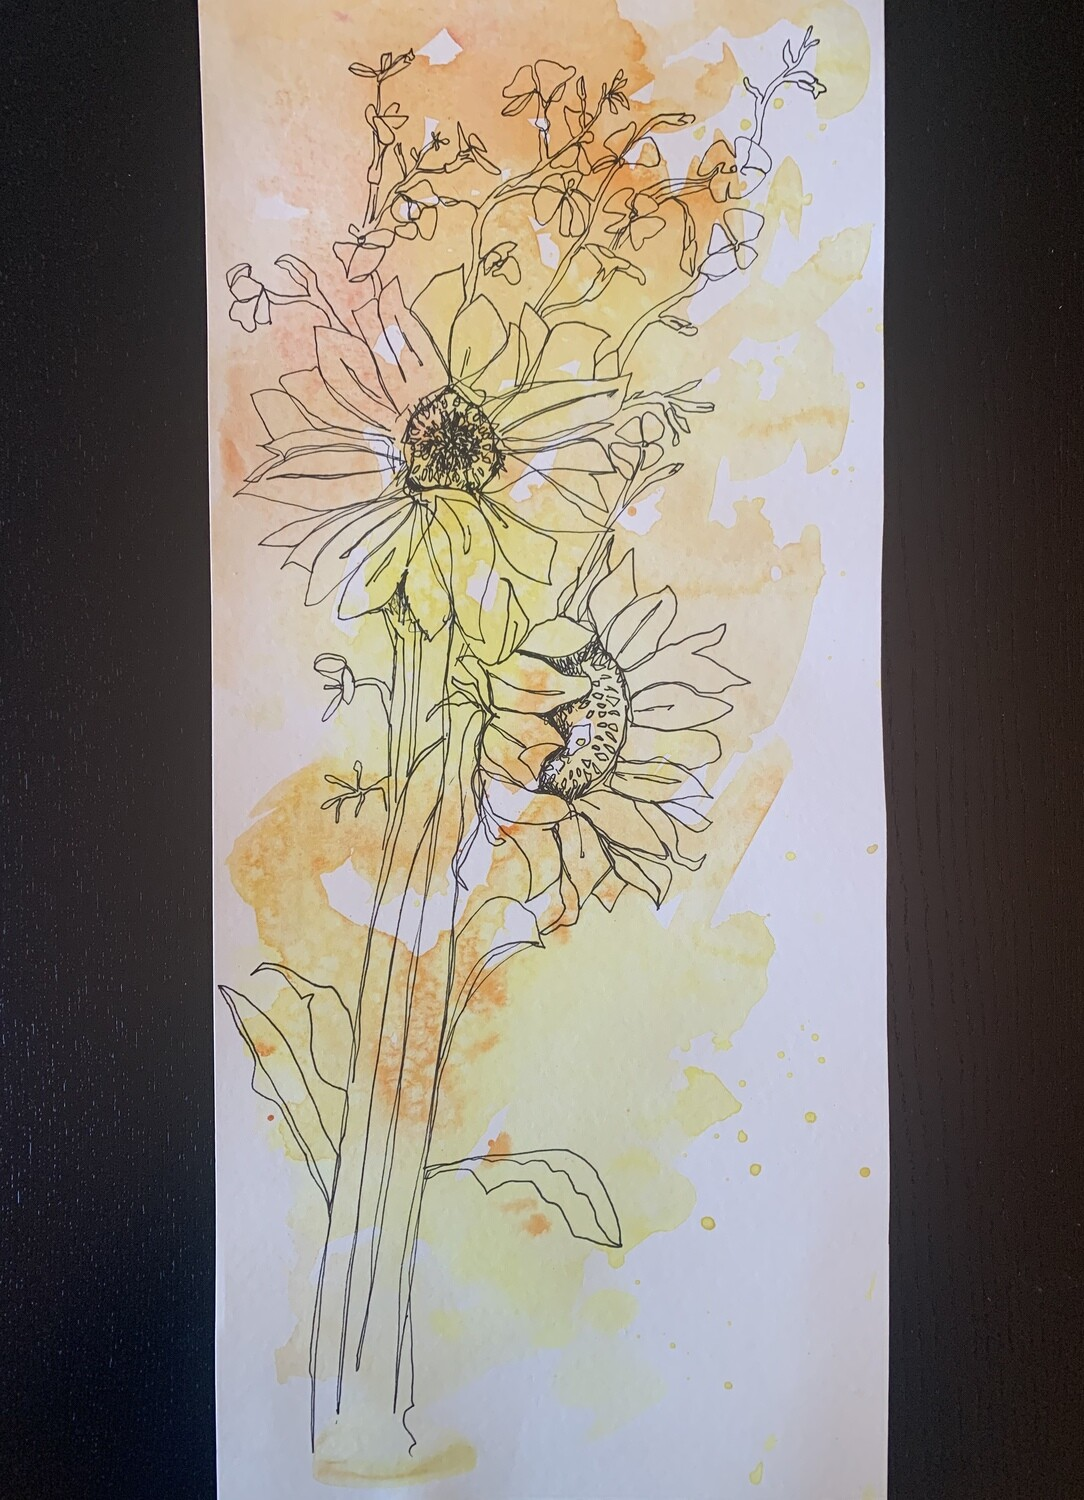 Sunflower sketch over watercolor